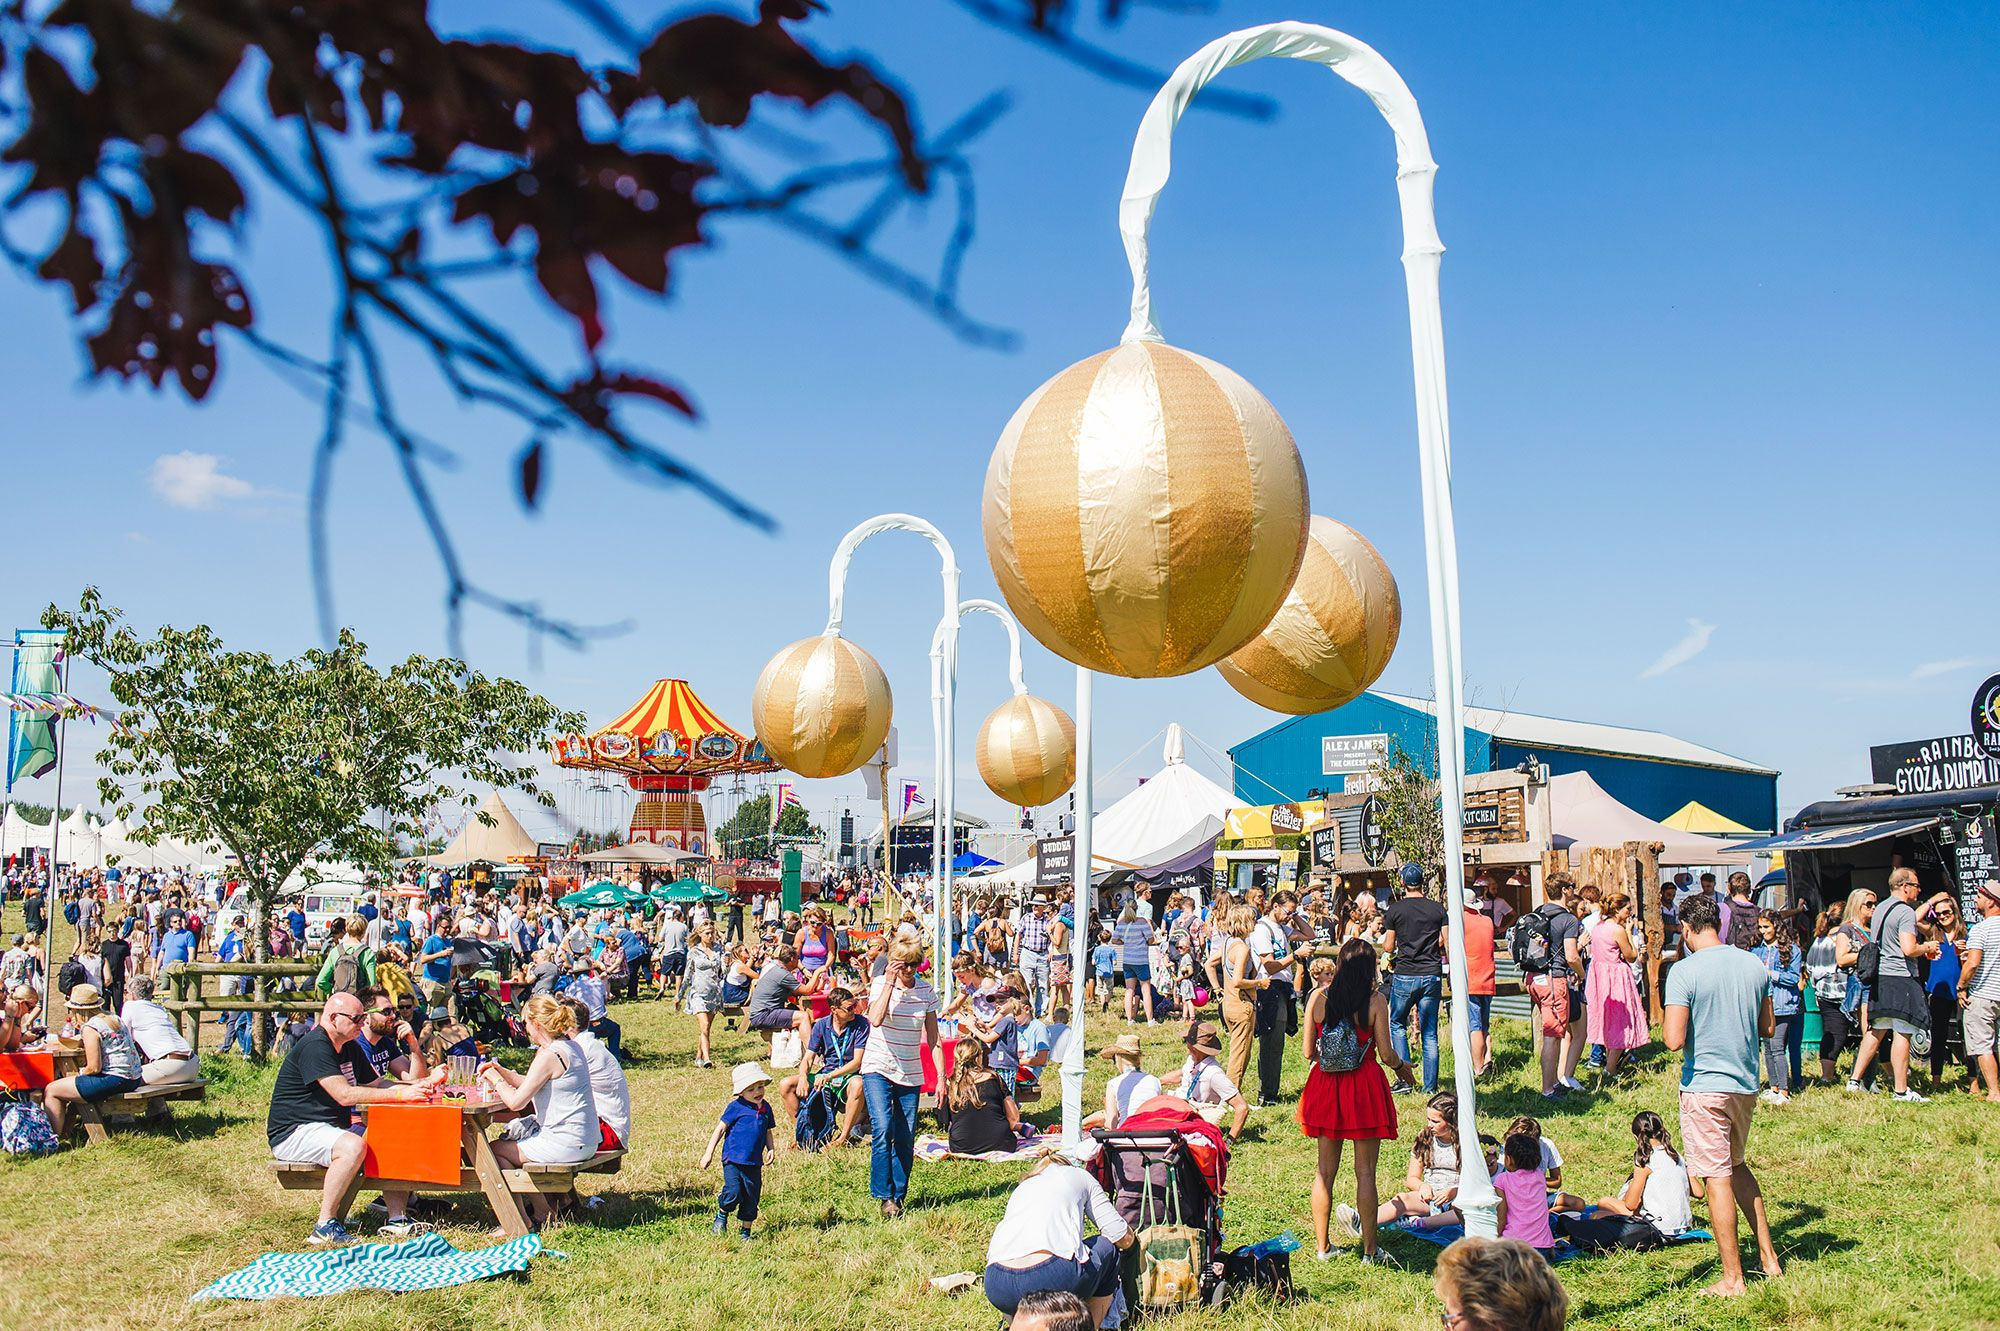 Country Living to host first-ever pop-up café at The Big Feastival 2019